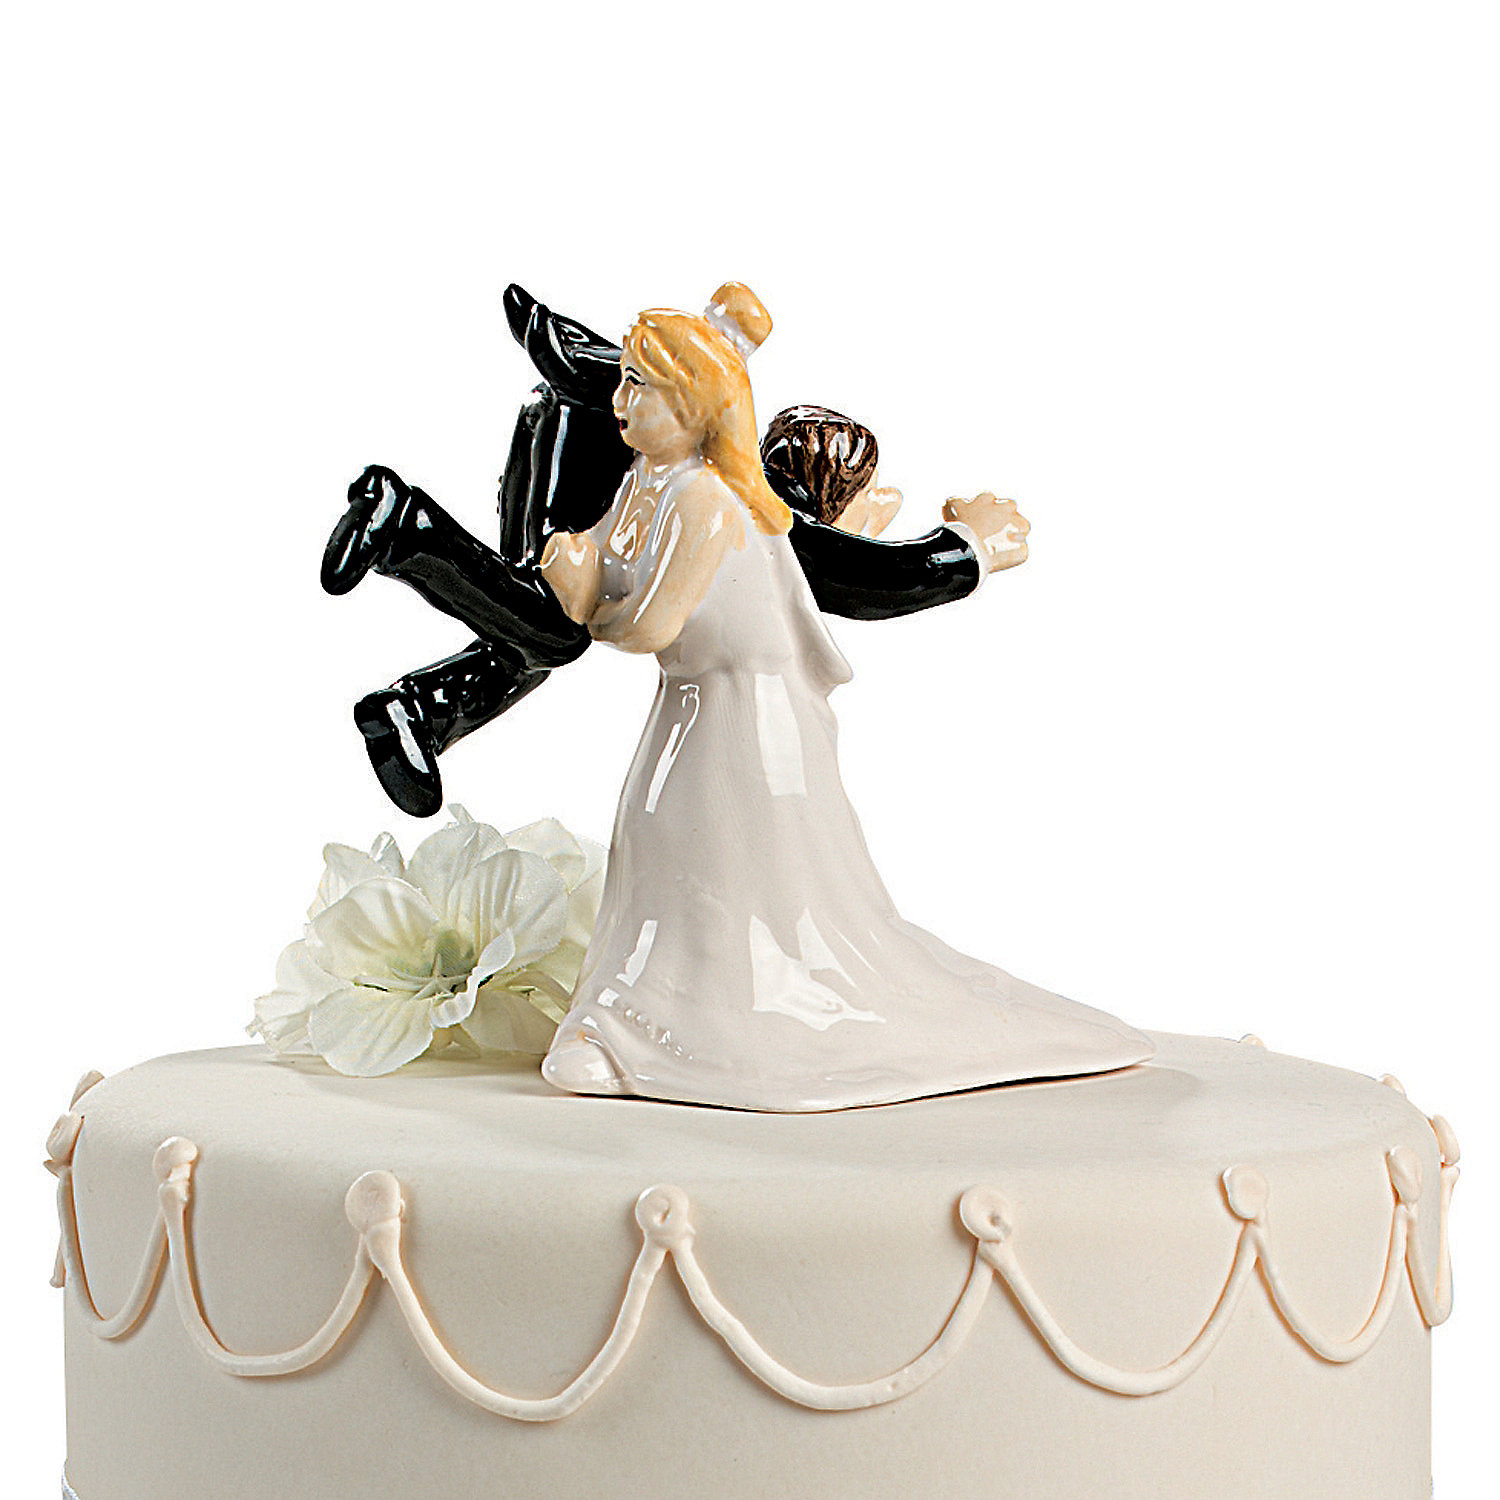 Pics s Interracial Wedding Cake Toppers Funny